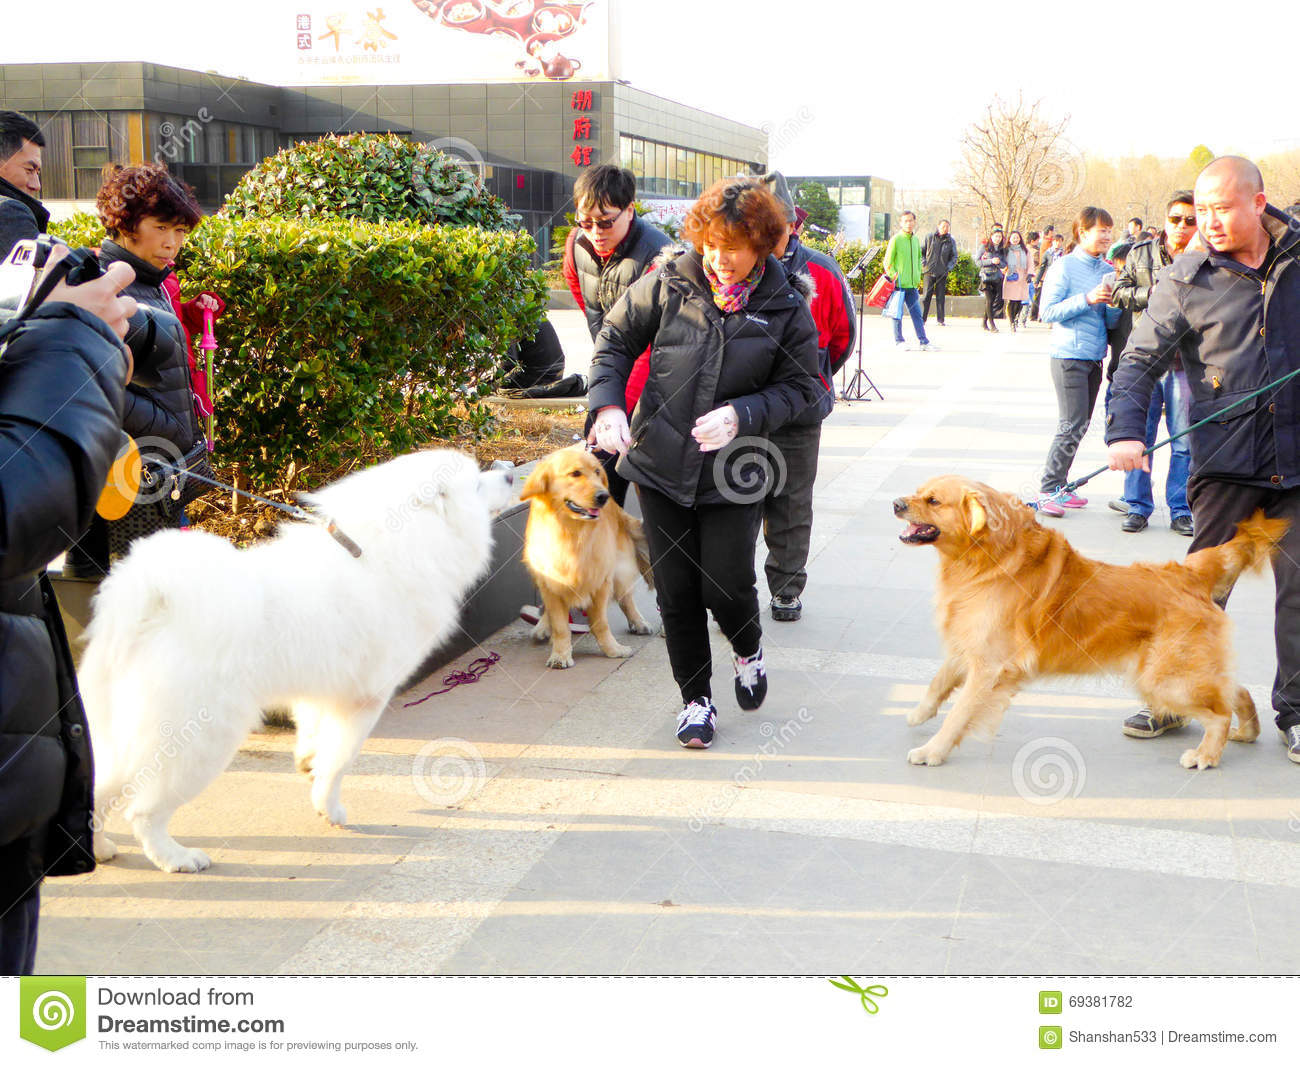 Dois jogos do golden retriever e do Samoye